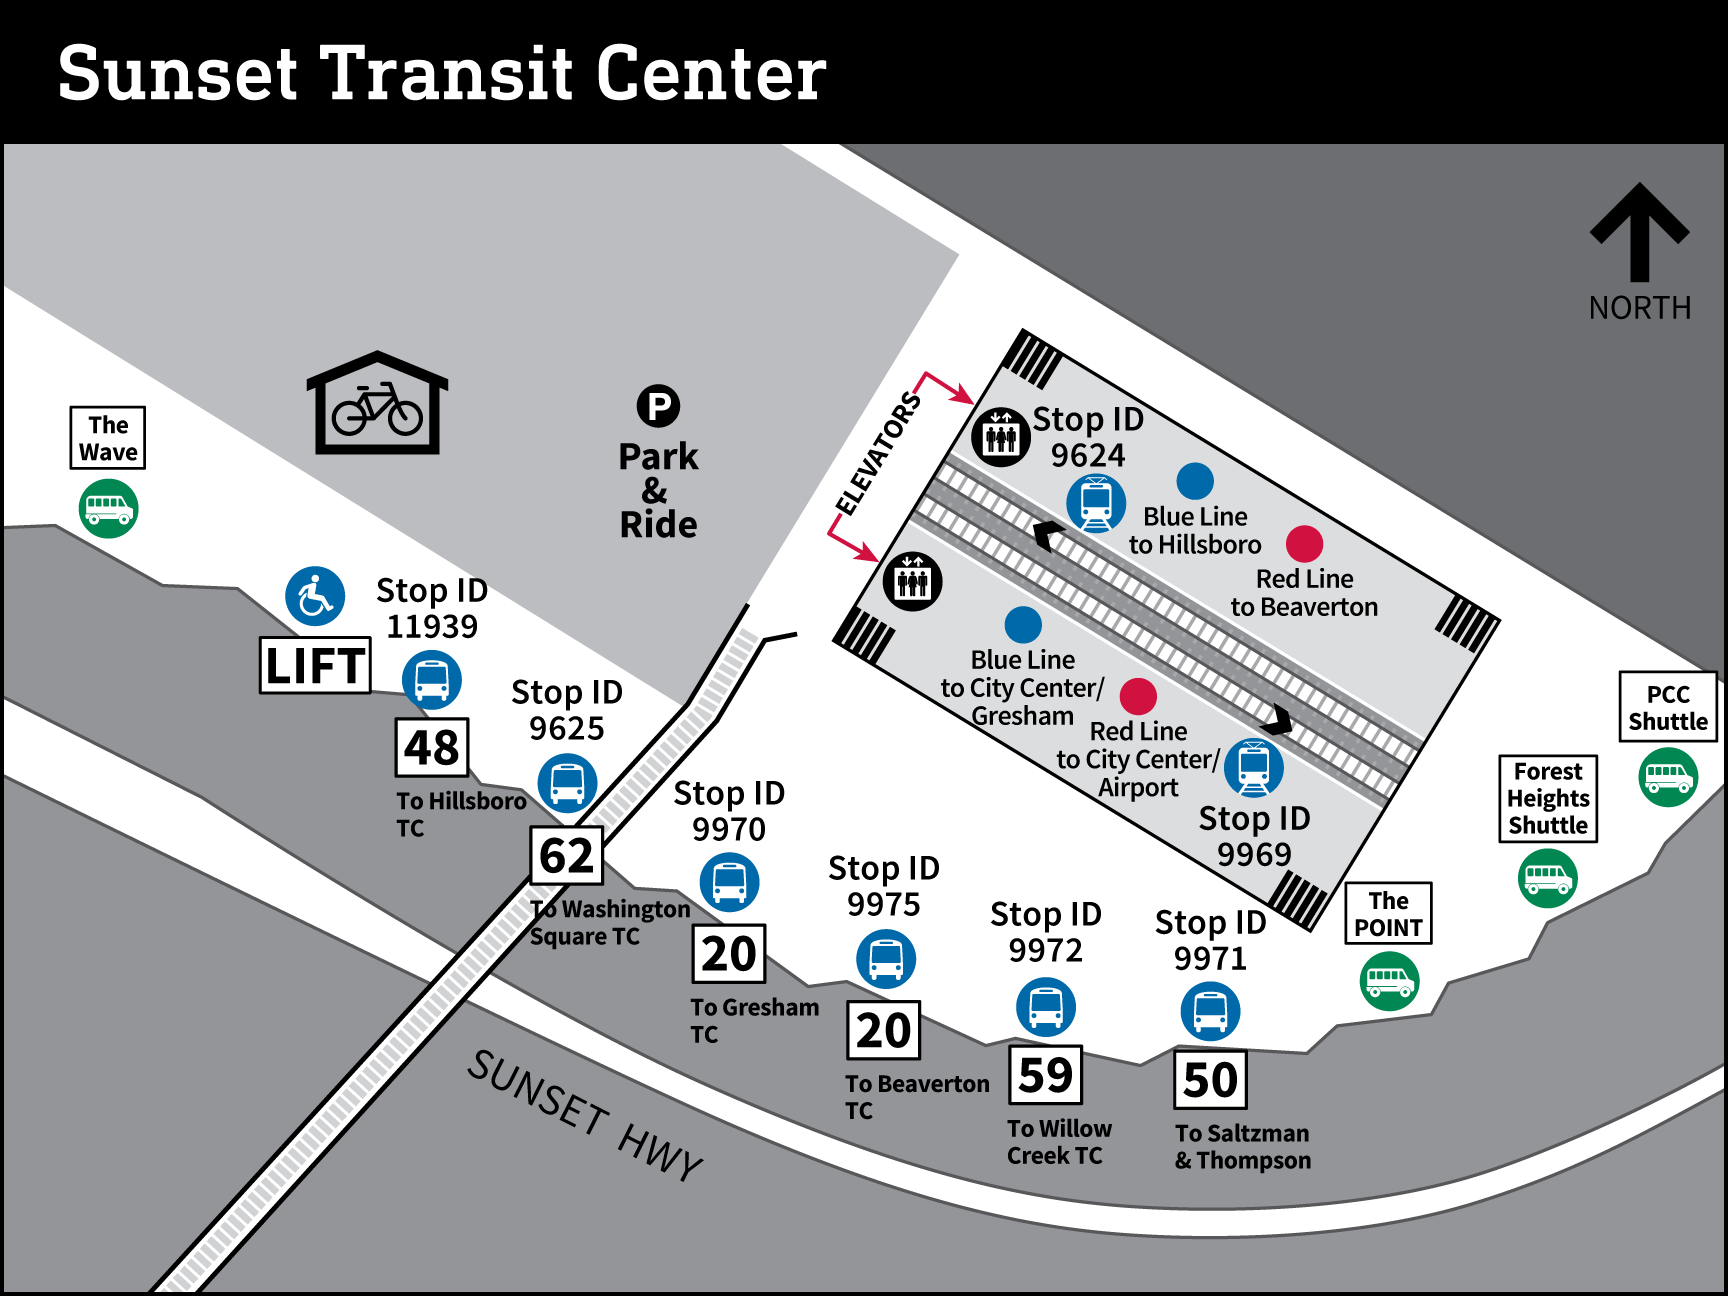 Map of Sunset Transit Center